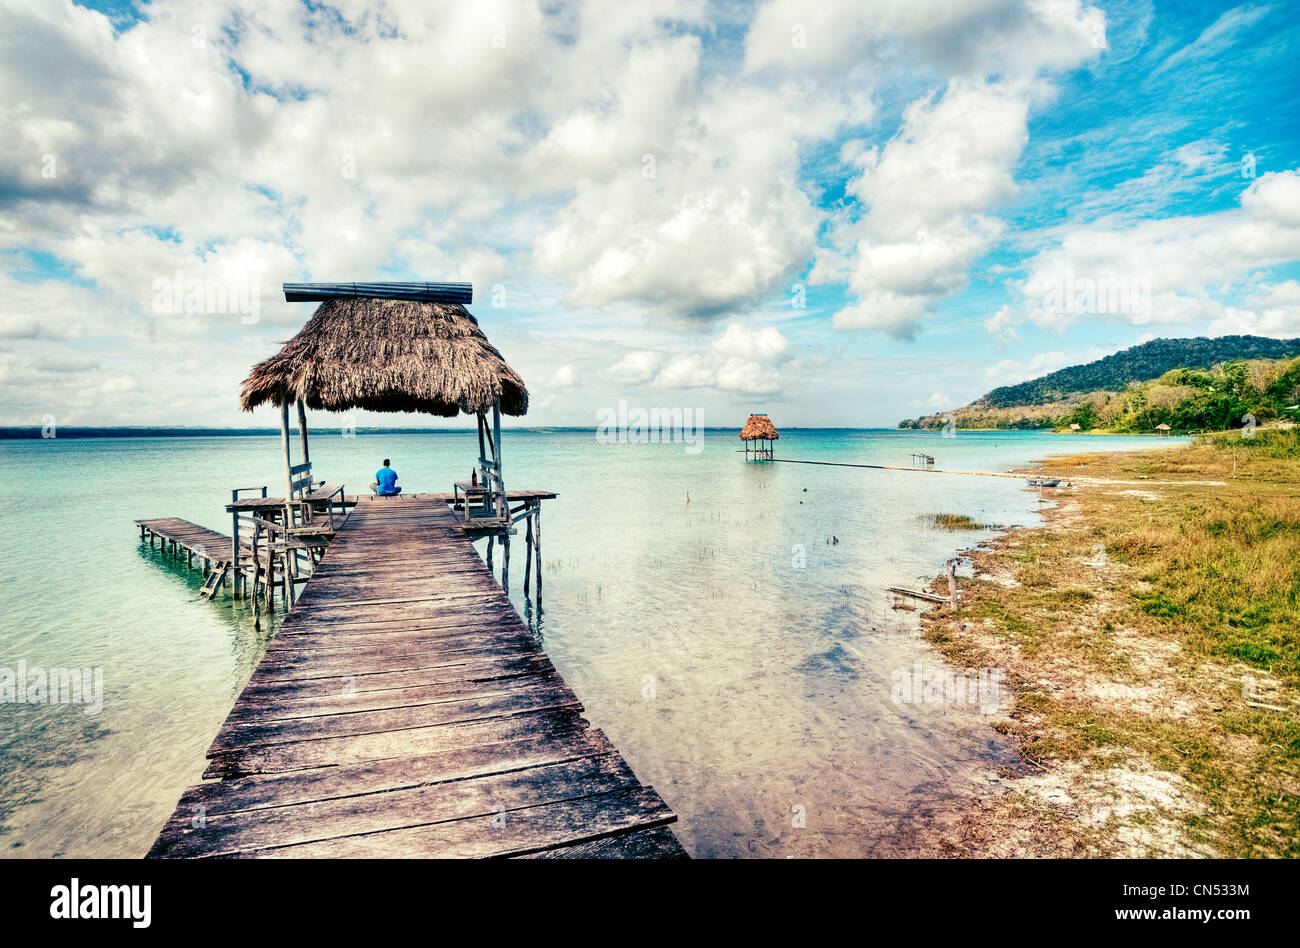 Docks on Lake Peten Itza, Guatemala in the village of El Remate. - Stock Image